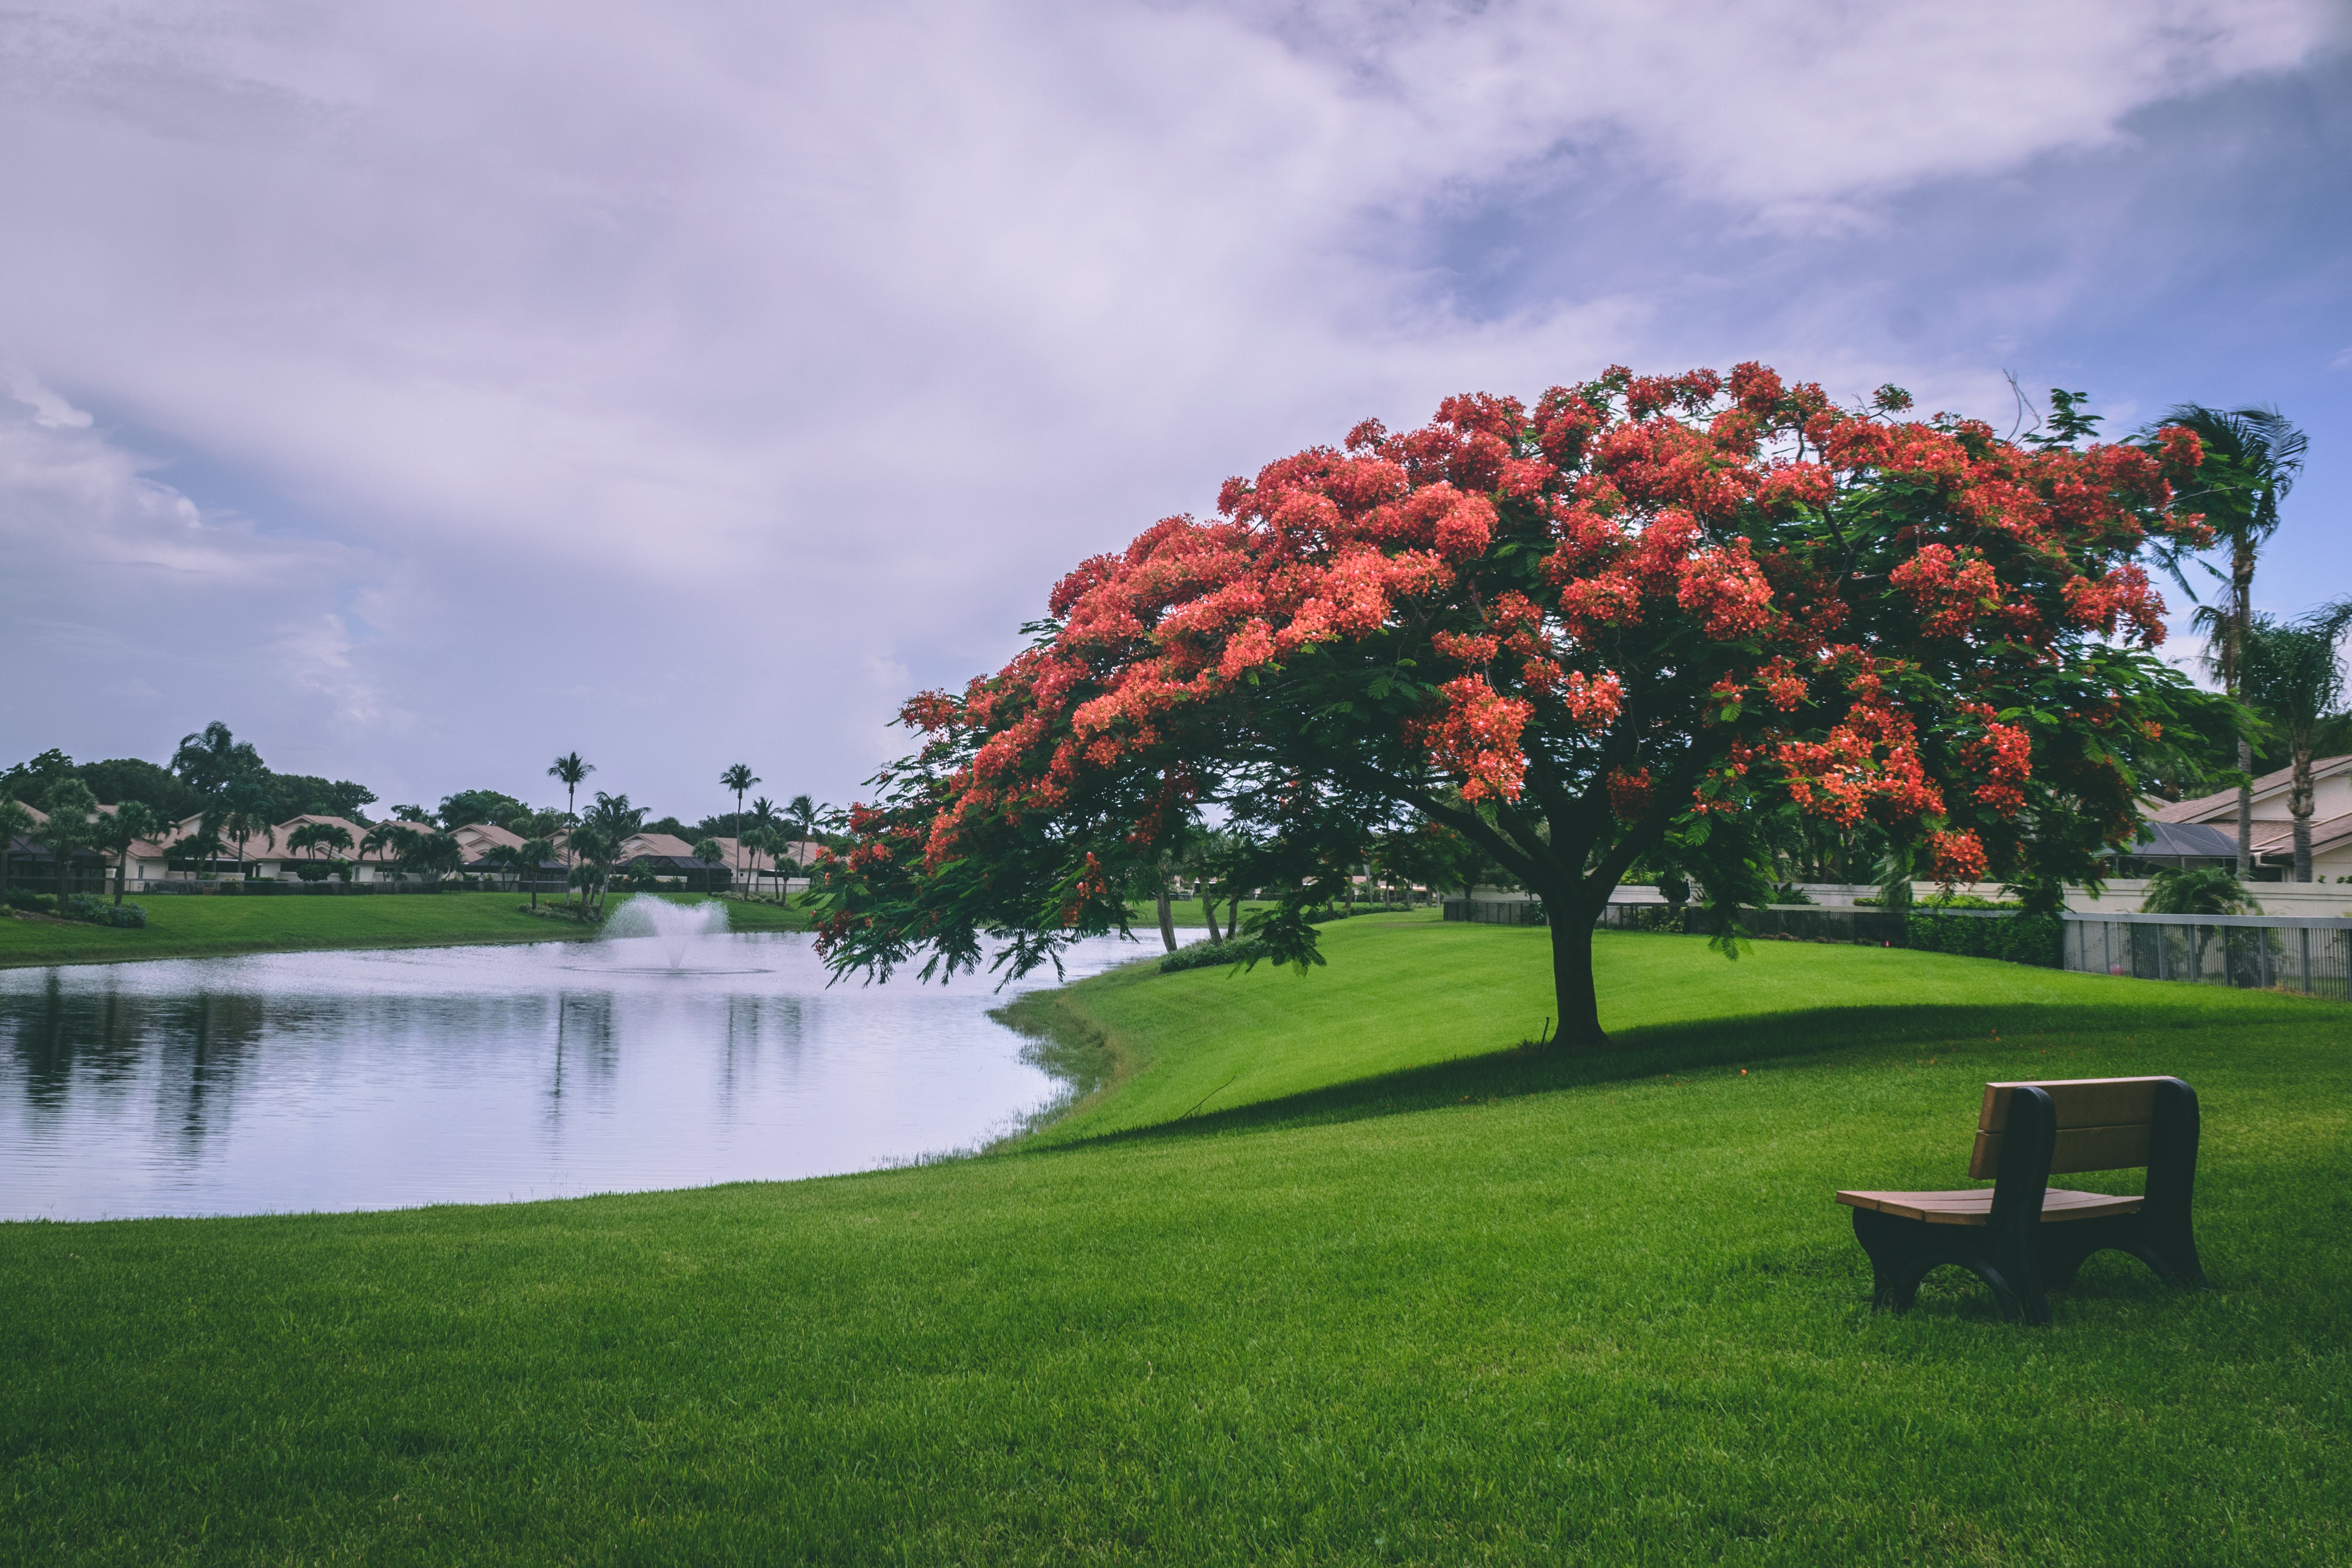 Photo of Red Flowering Trees Beside Body of Water